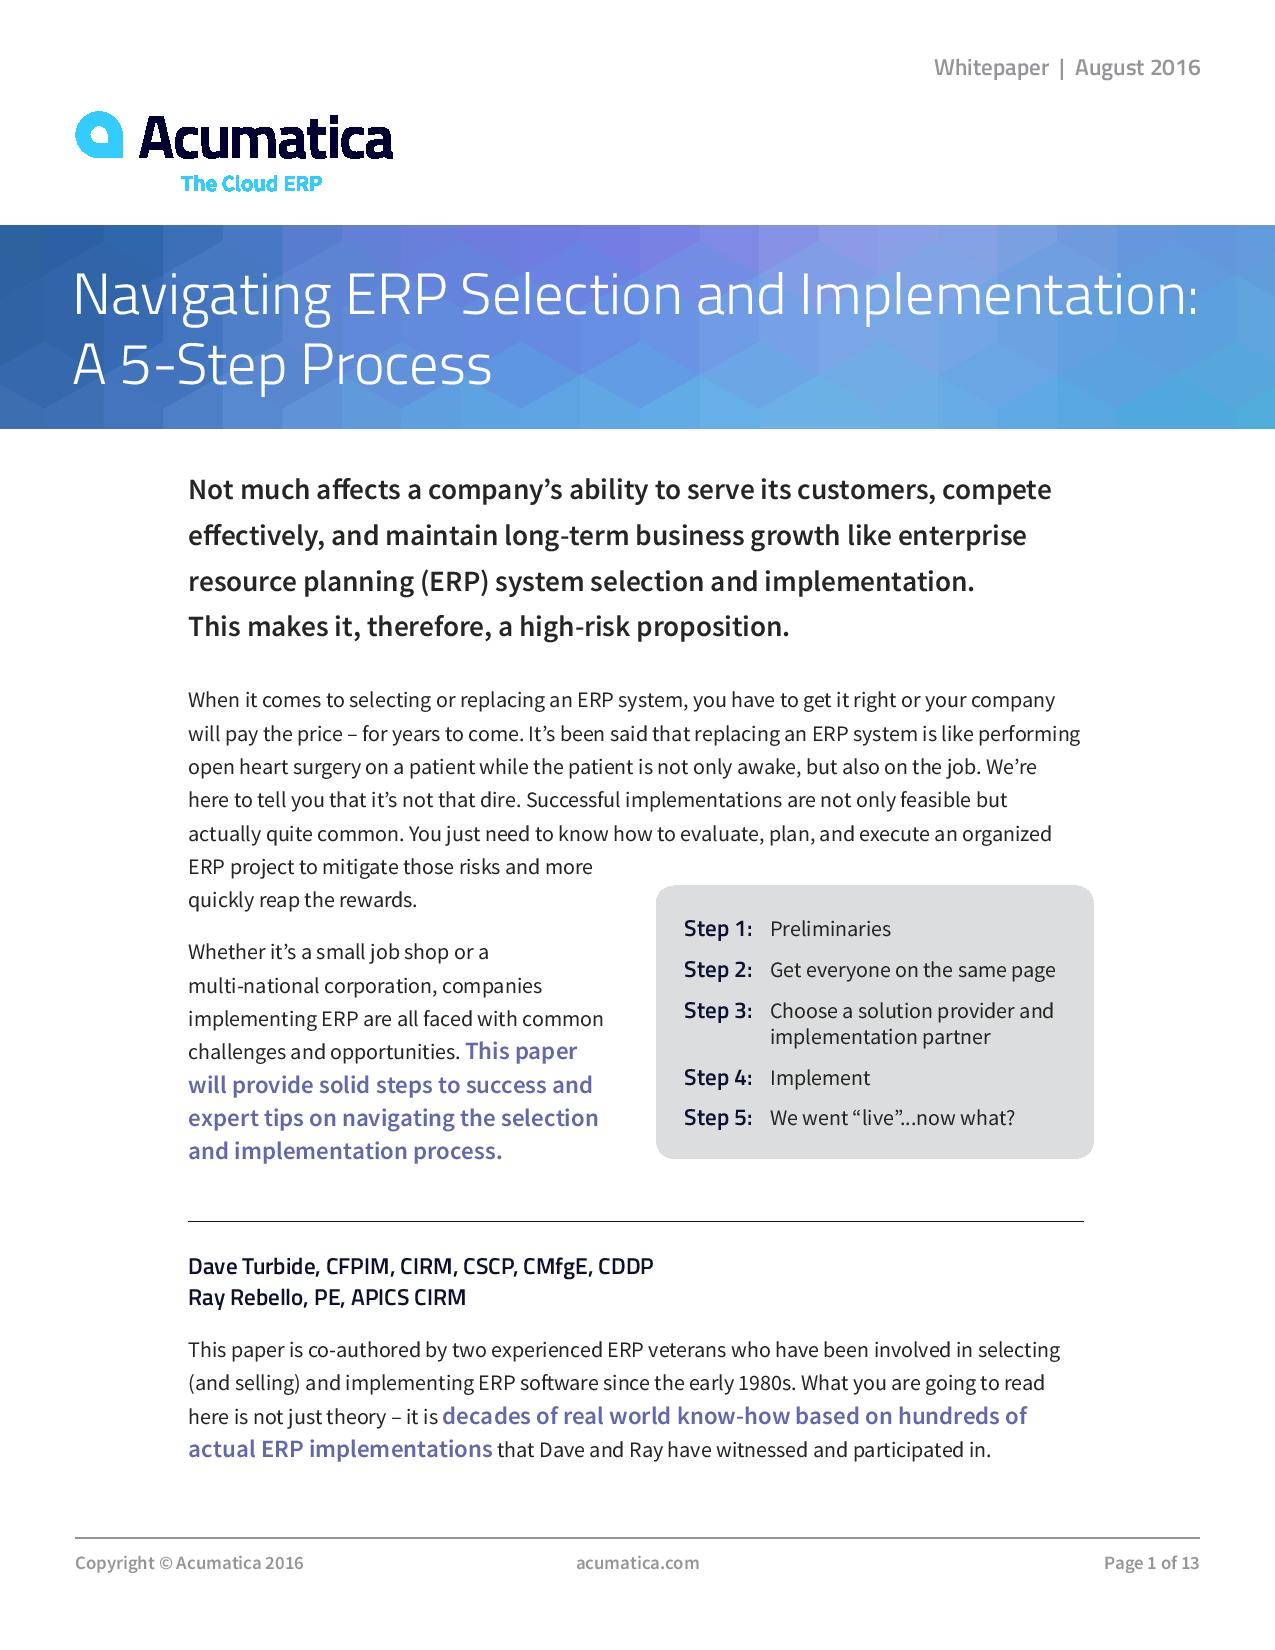 Navigating ERP Selection and Implementation: A 5-Step Process, page 0